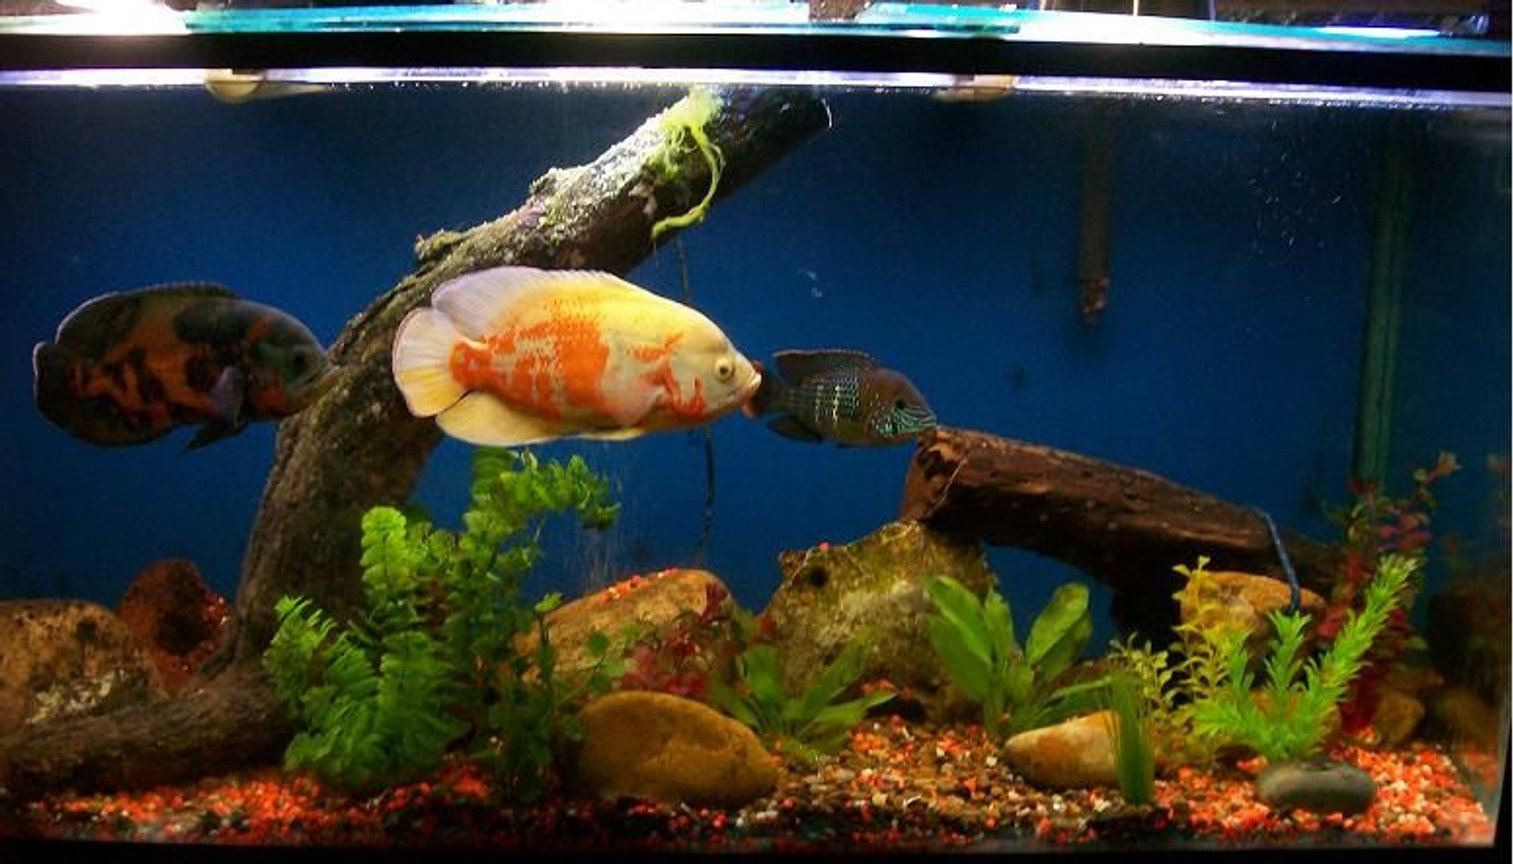 freshwater fish - astronotus ocellatus - albino oscar stocking in 120 gallons tank - i have 2 oscar fishes and a green terror cichild the tank dimensions are 140 large 60 tall and 50 wide all cm lighting : is flurecent light around 220 watts Filtration Aqua clear 70 filter